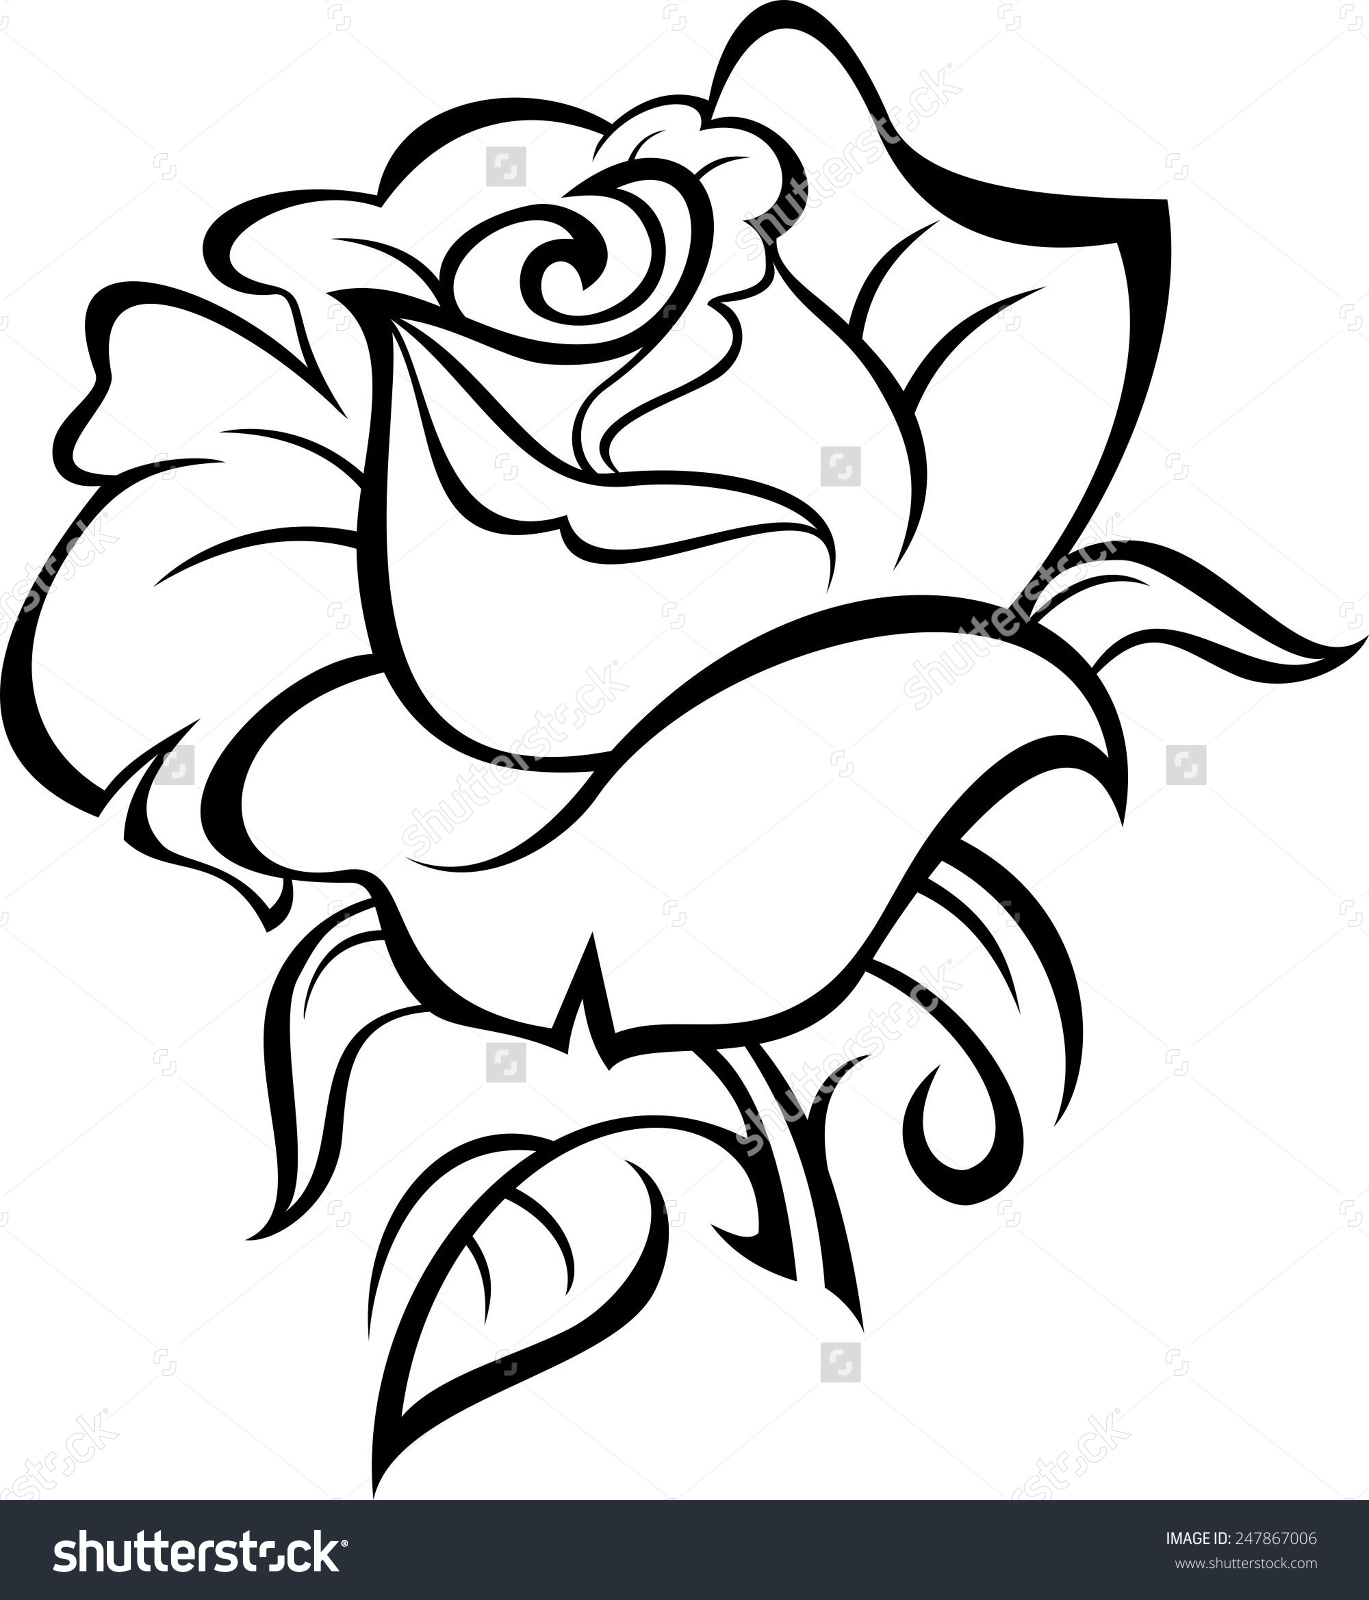 Rose Tattoo Drawing At Getdrawings Com Free For Personal Use Rose